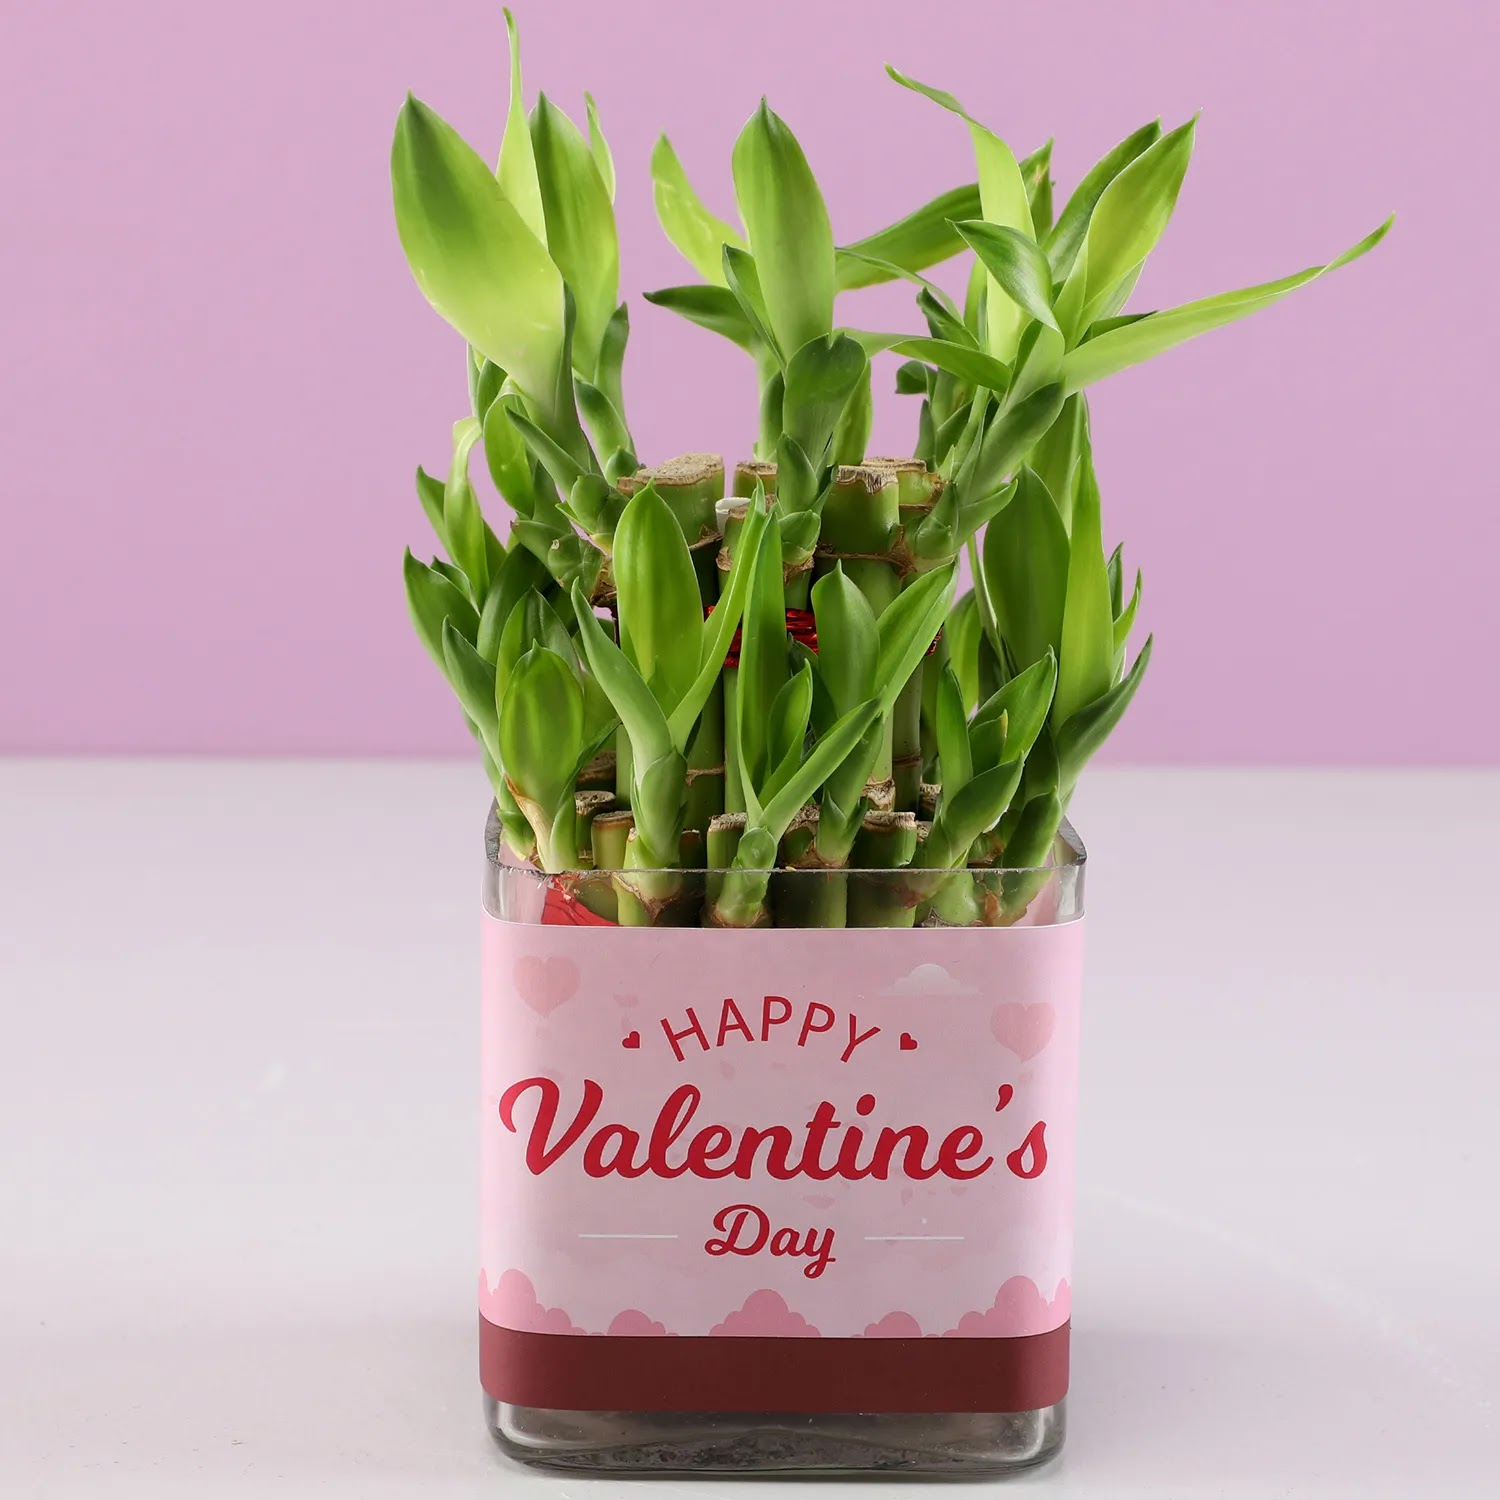 Bamboo Plant for valentine's day gift